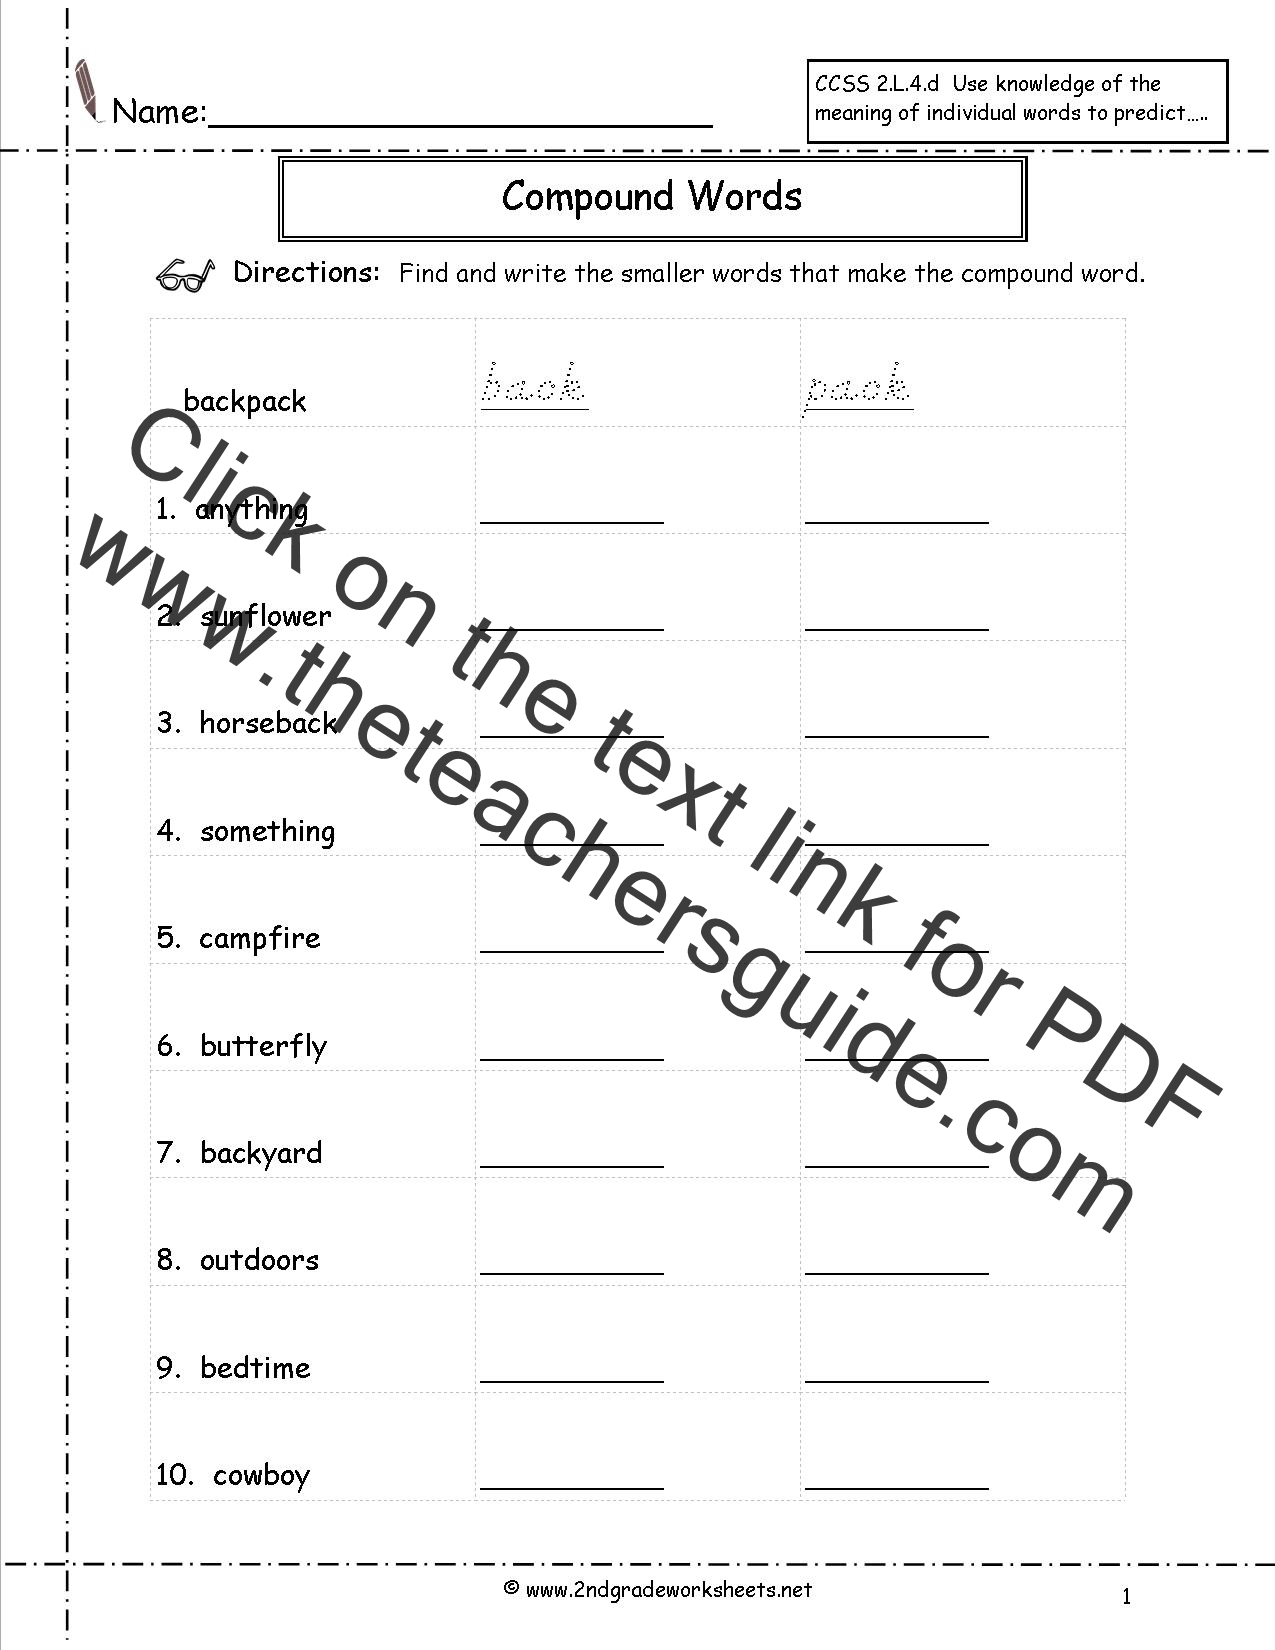 Free Worksheet Free Printable English Grammar Worksheets free languagegrammar worksheets and printouts compound words worksheets